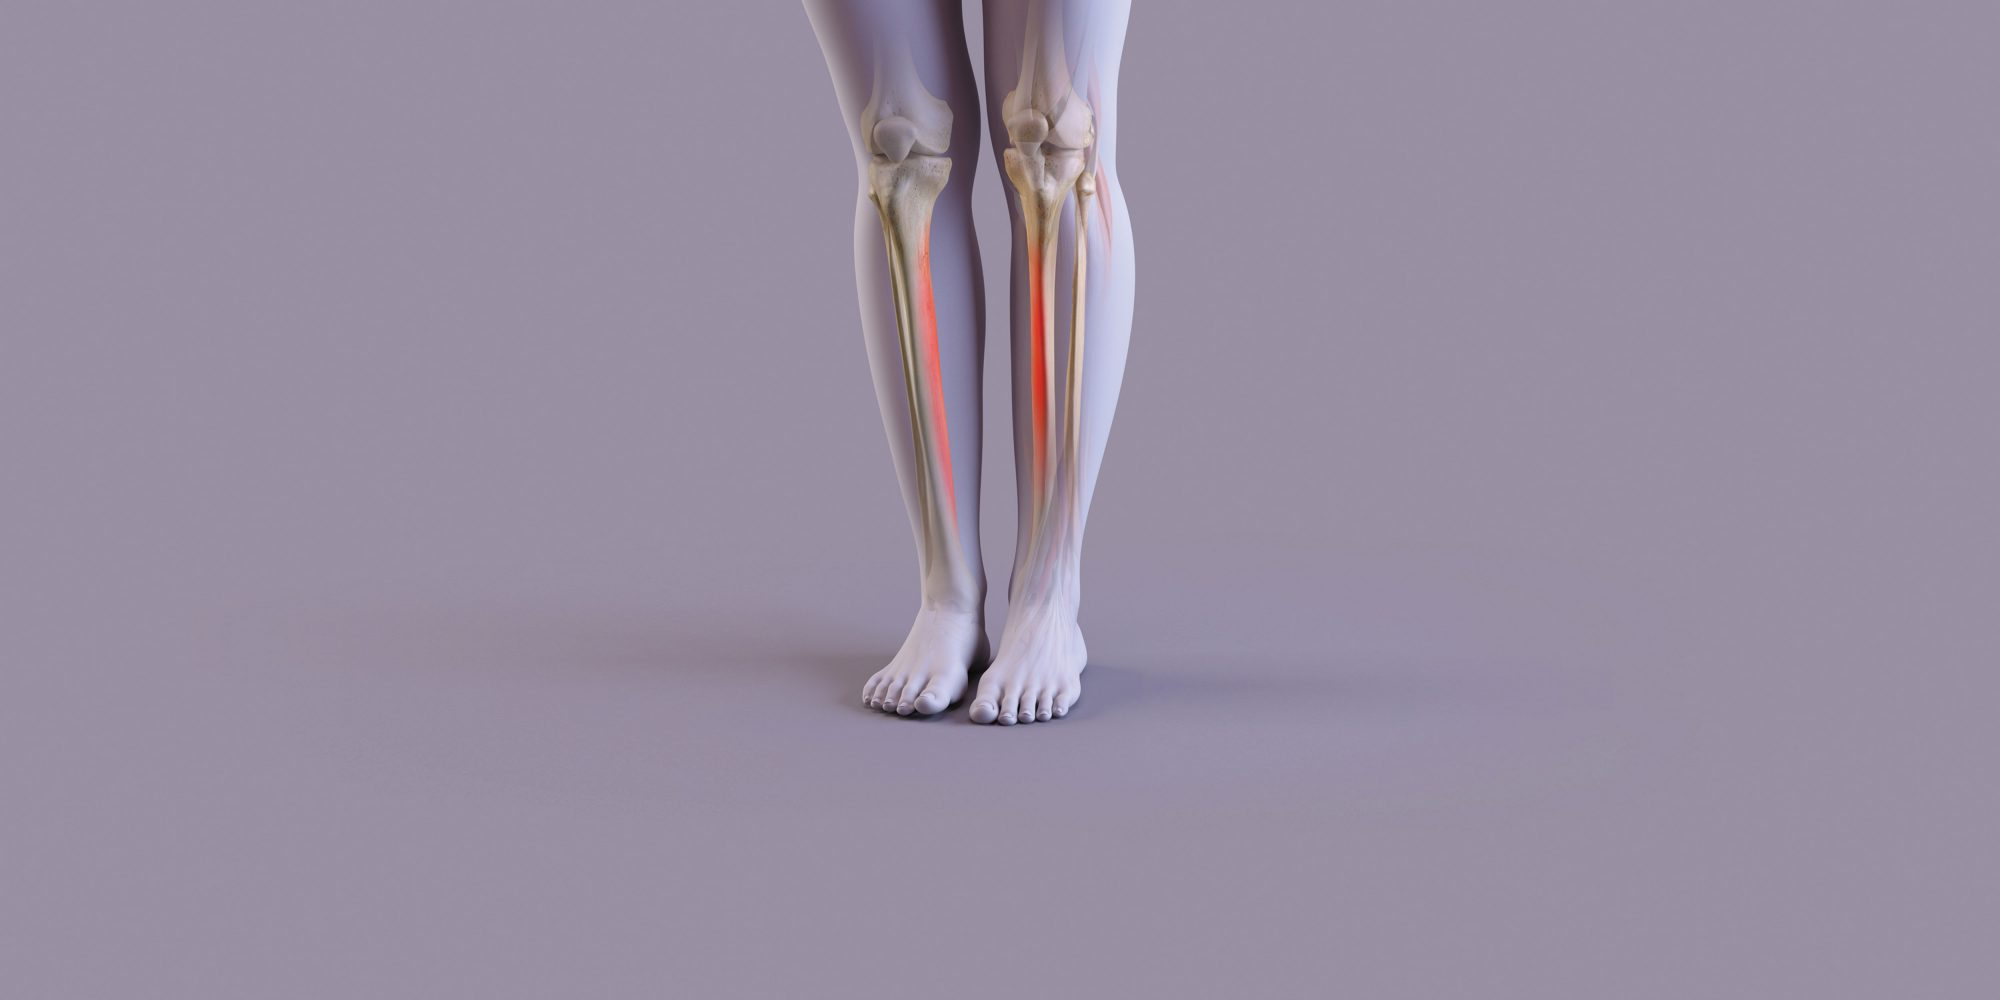 Why shin splints hurt so much